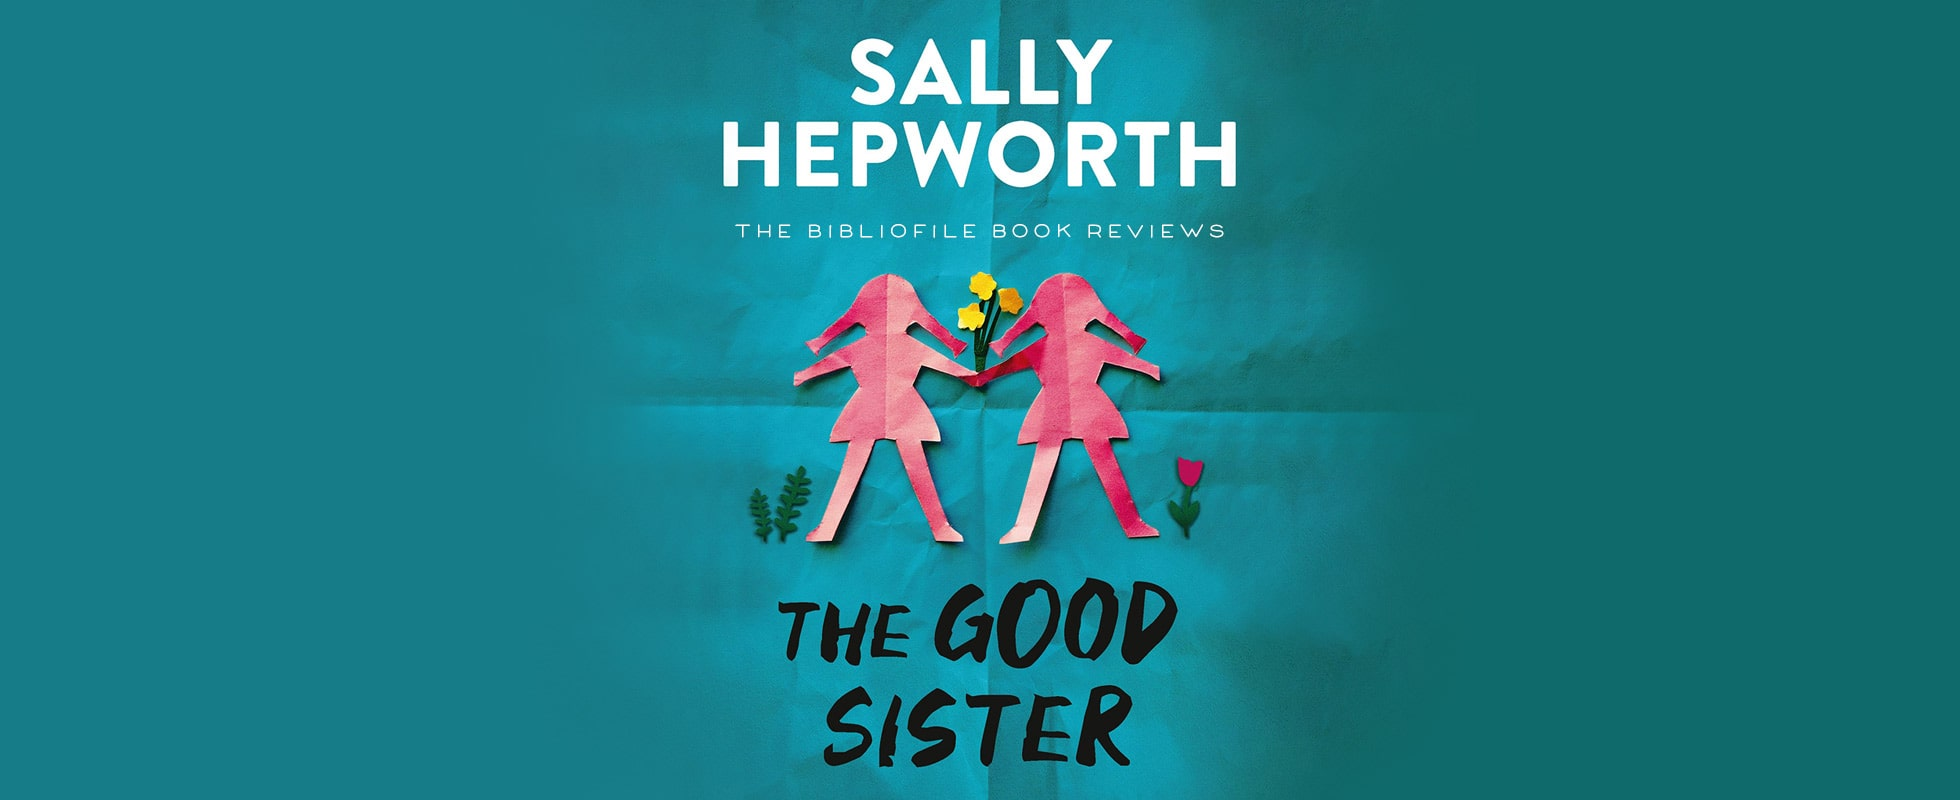 the good sister by sally hepworth book review summary synopsis recap spoilers